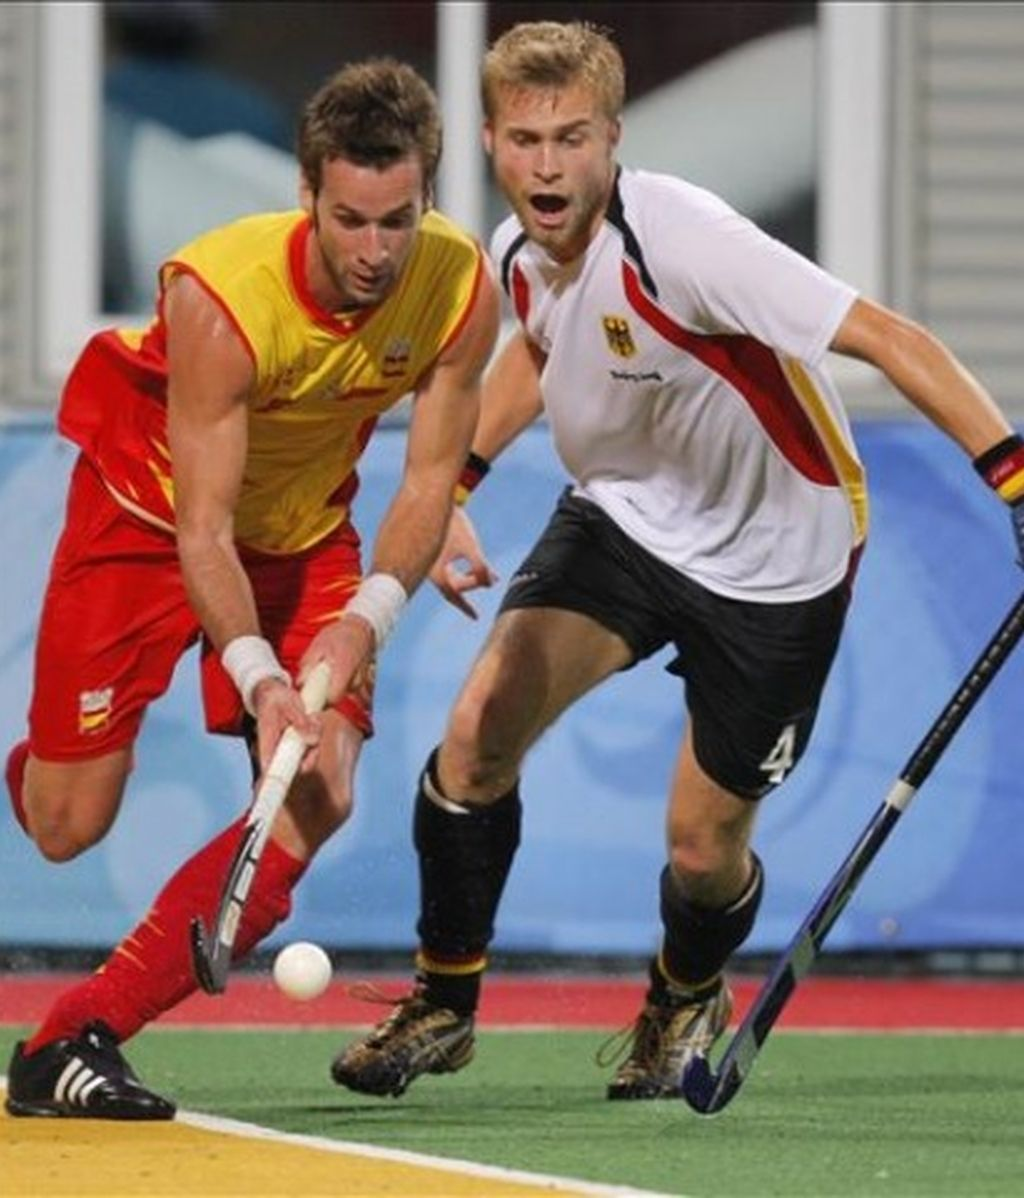 España pierde la final de hockey frente a Alemania